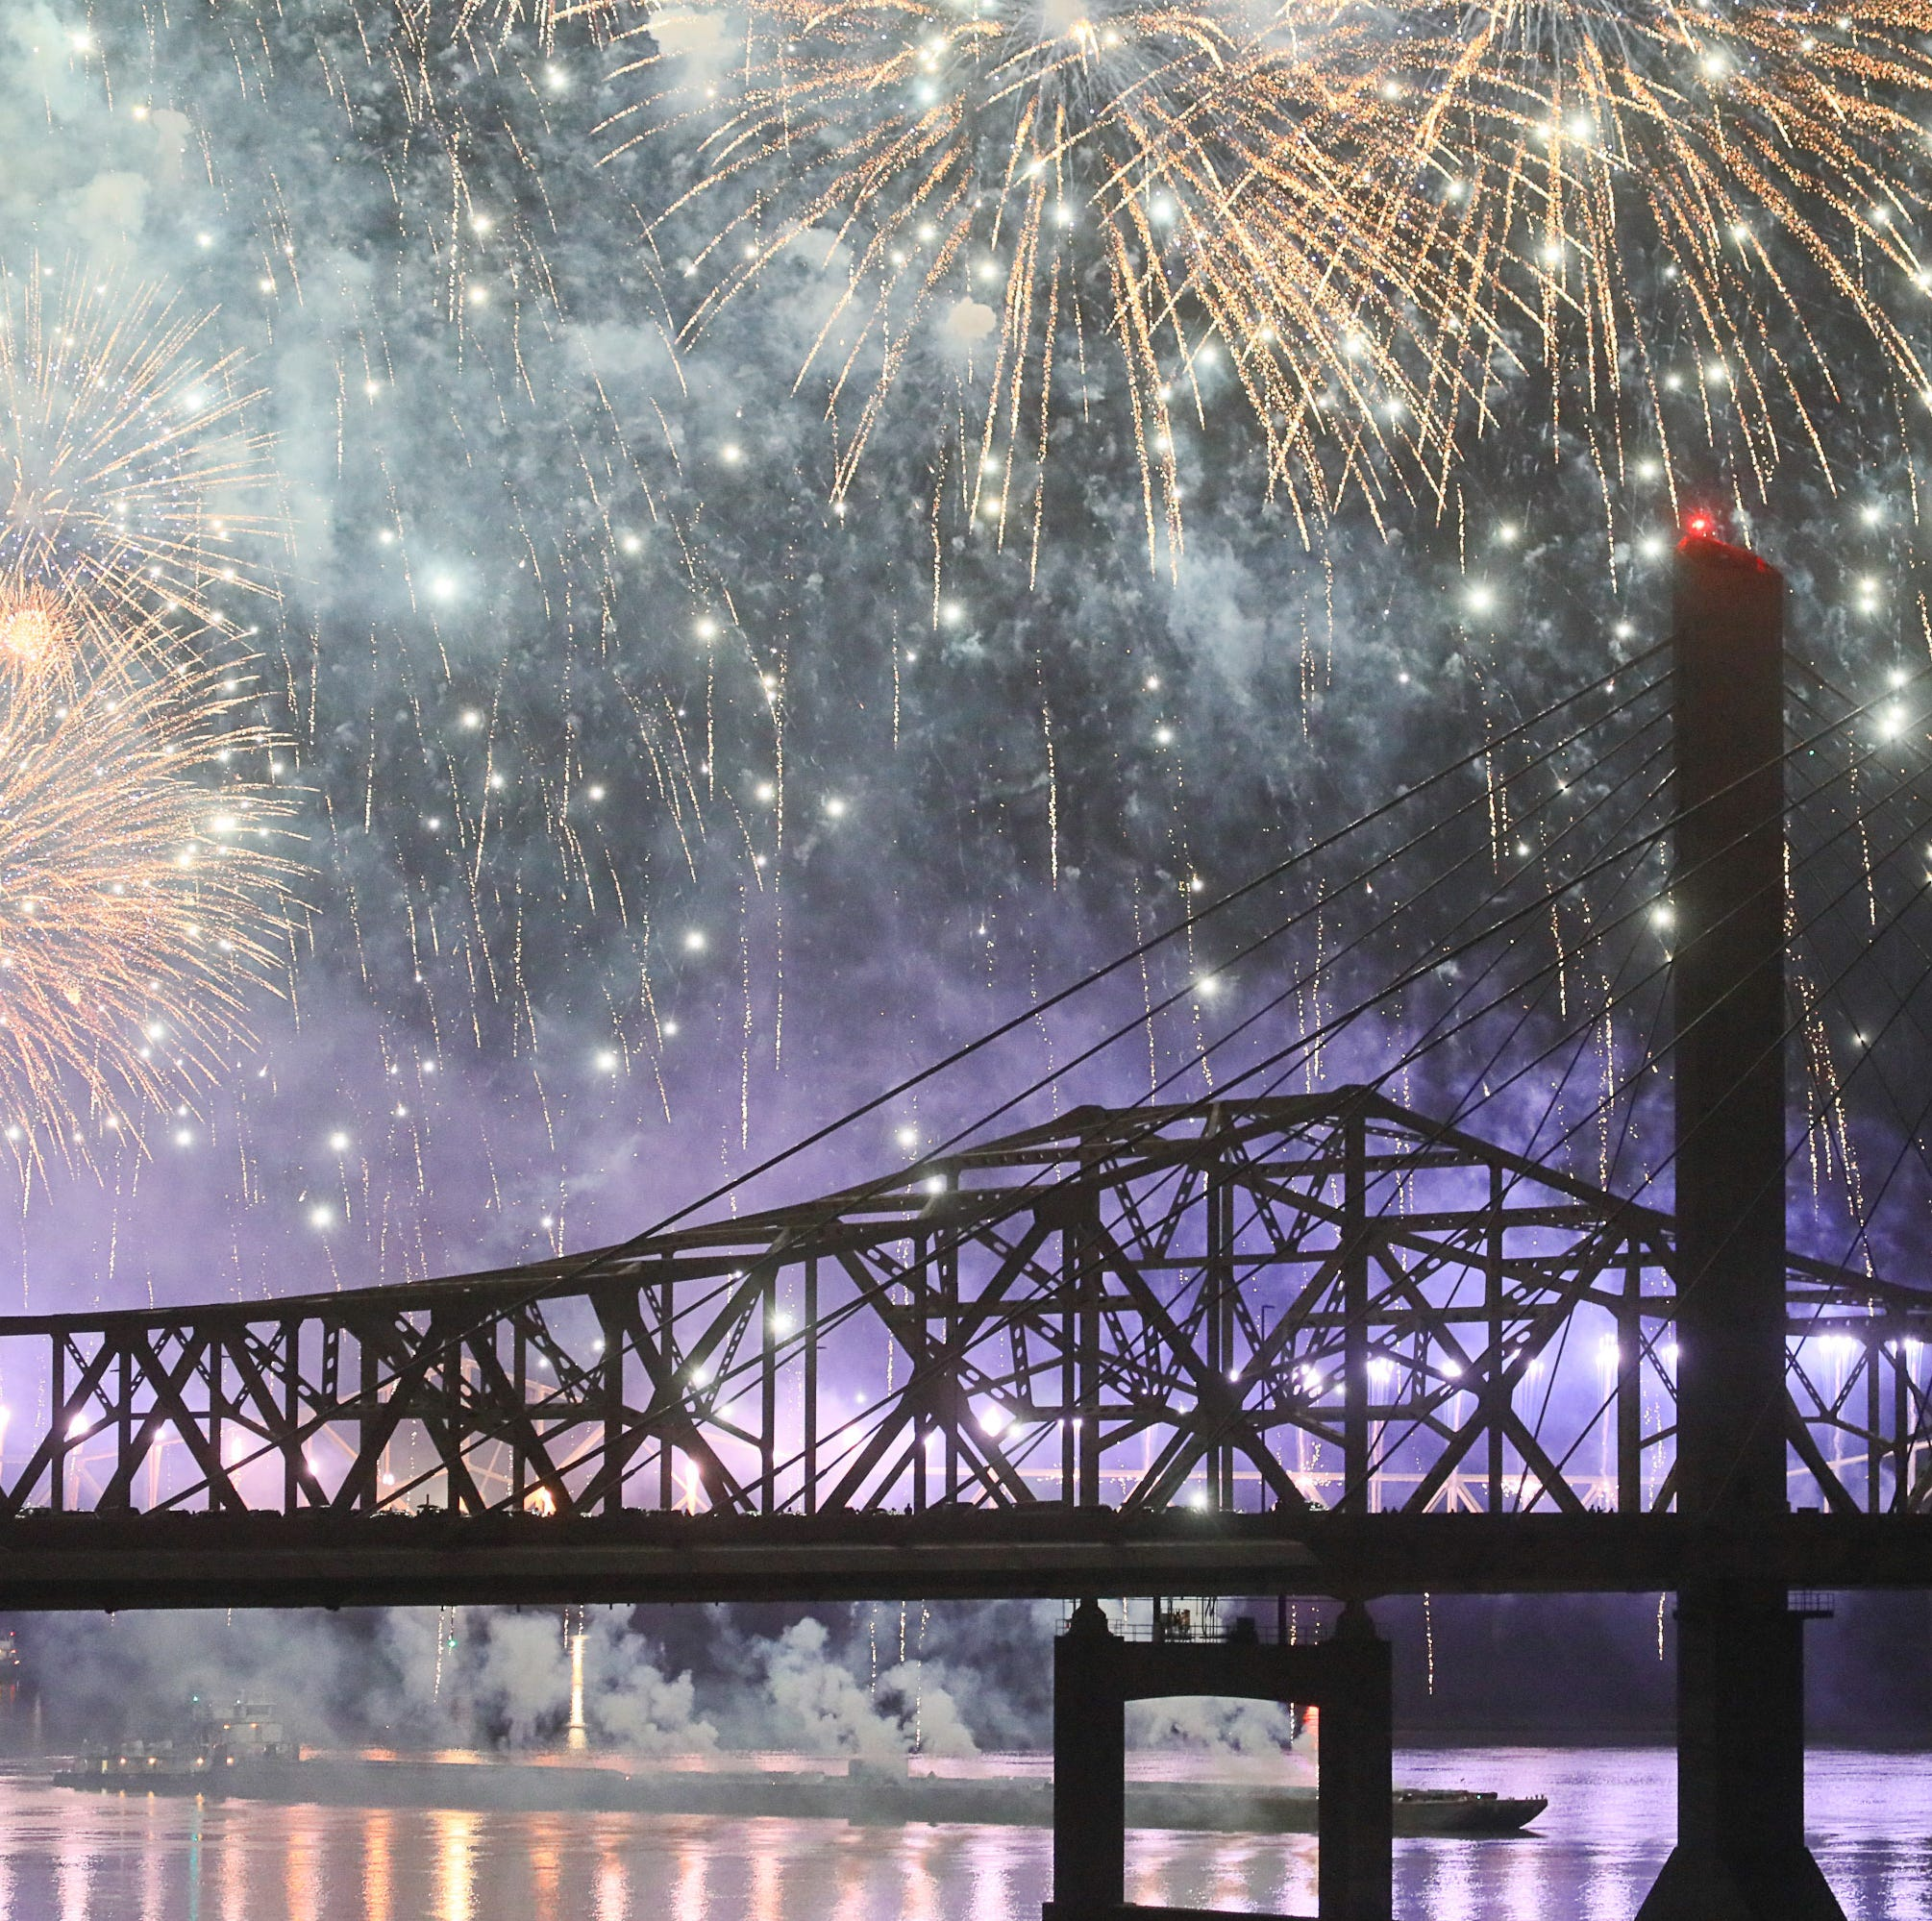 Check out the best scenes from Thunder Over Louisville 2019